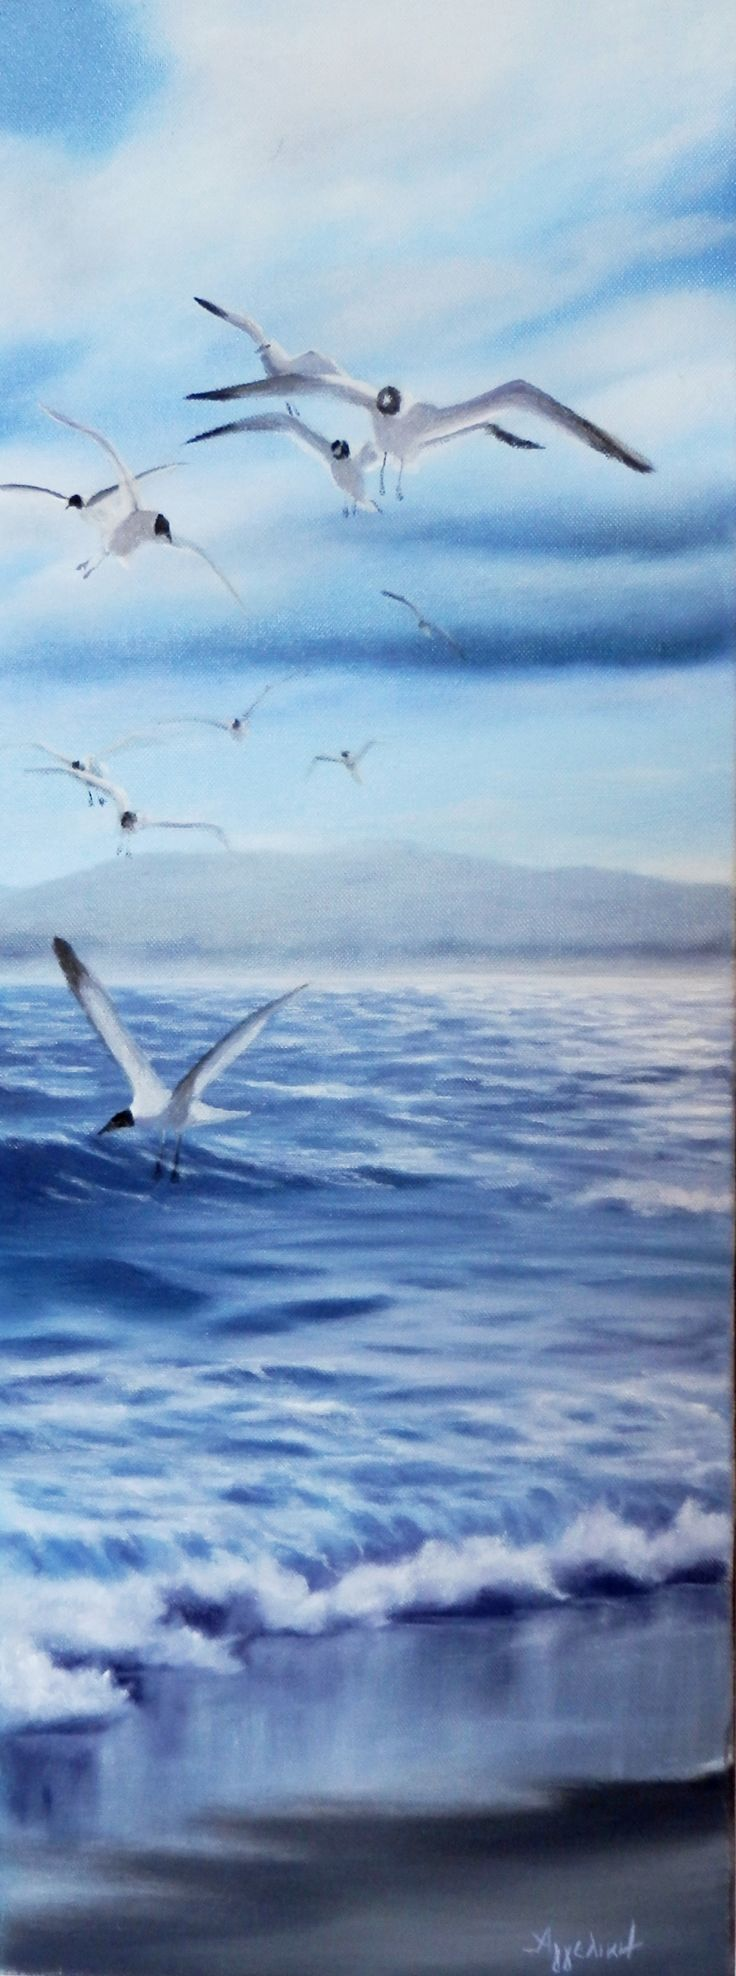 'Seaguls' by ΑγγελικΗ, 25X65cm, oil on canvas